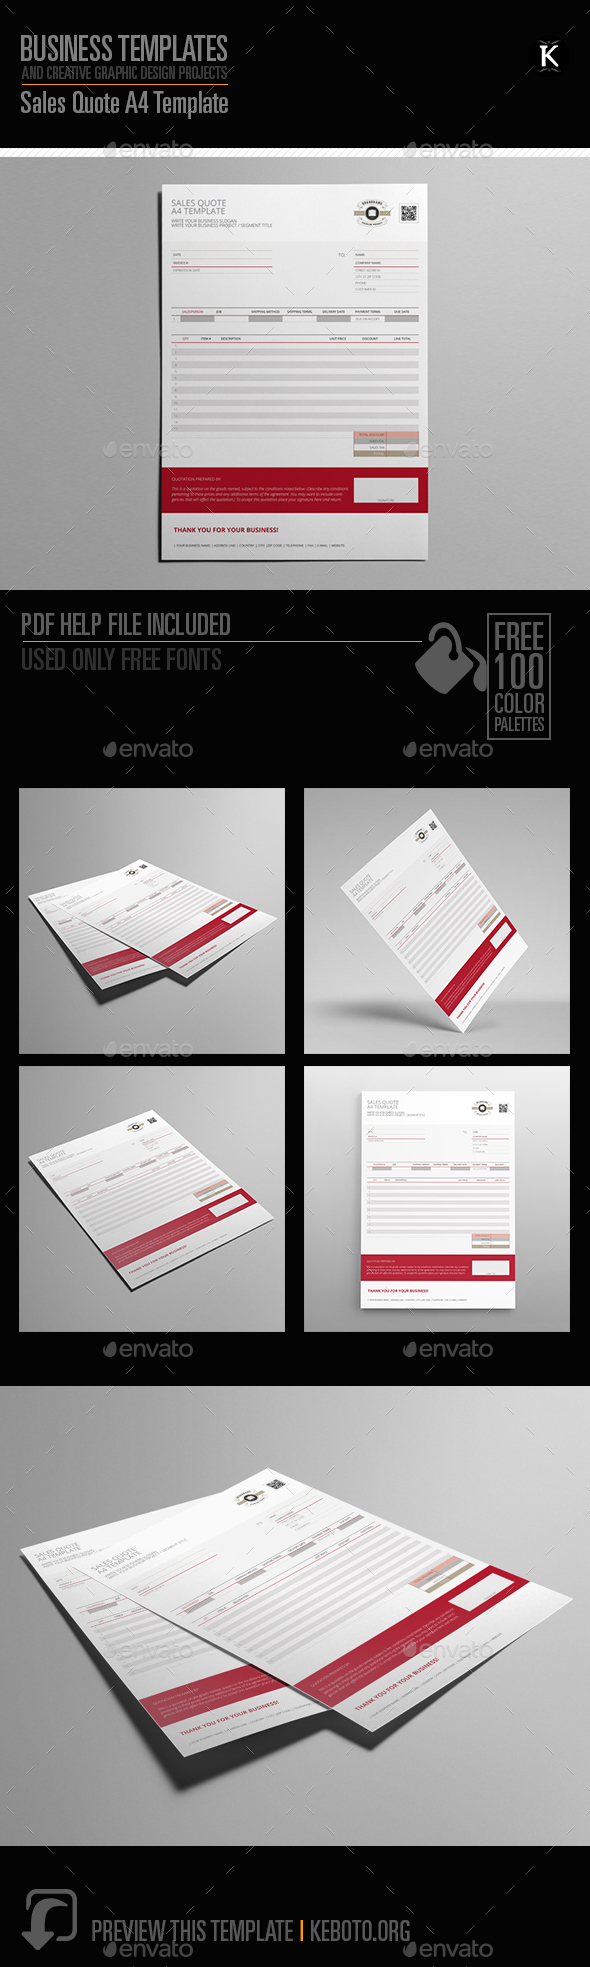 Sales Quote A4 Template by Keboto | GraphicRiver